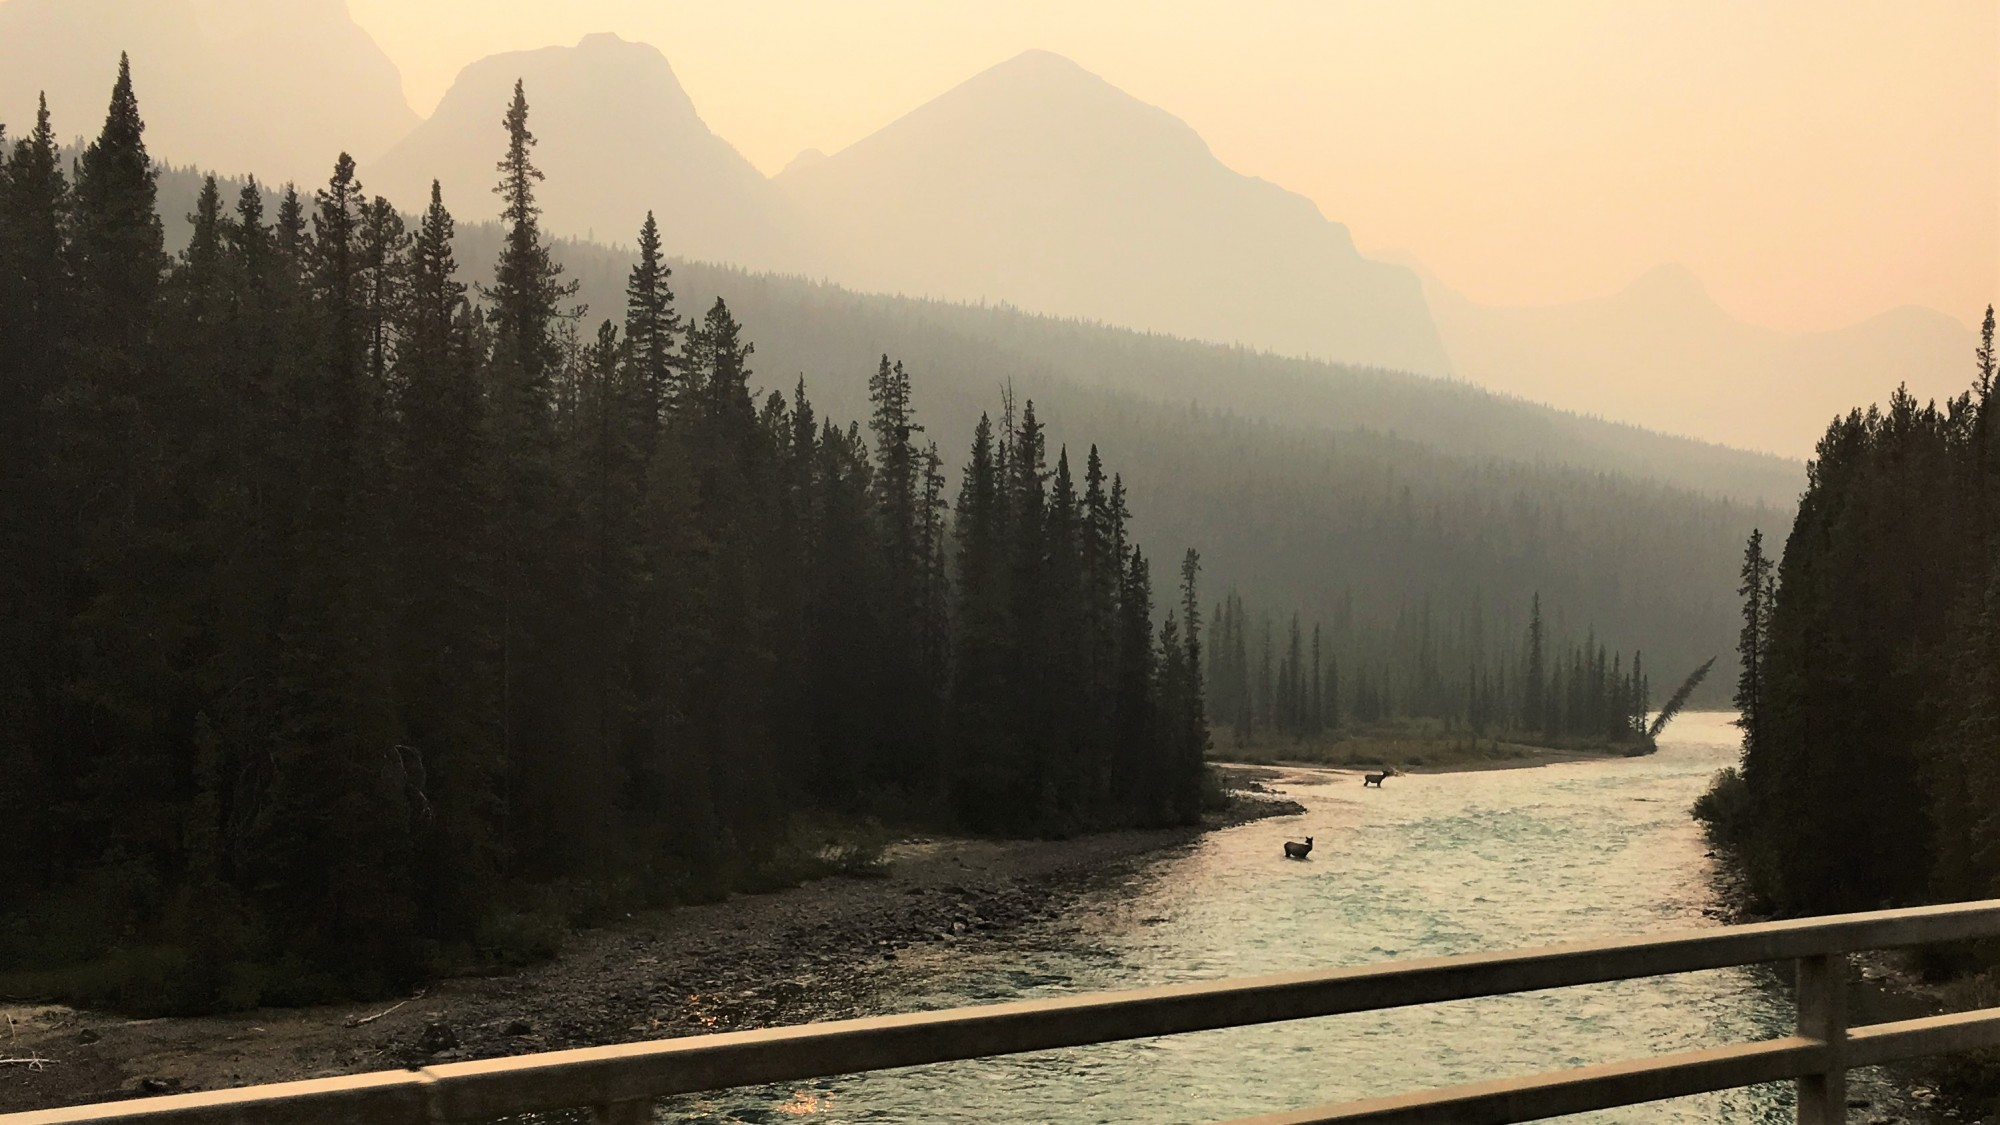 Moose in the river at Lake Louise